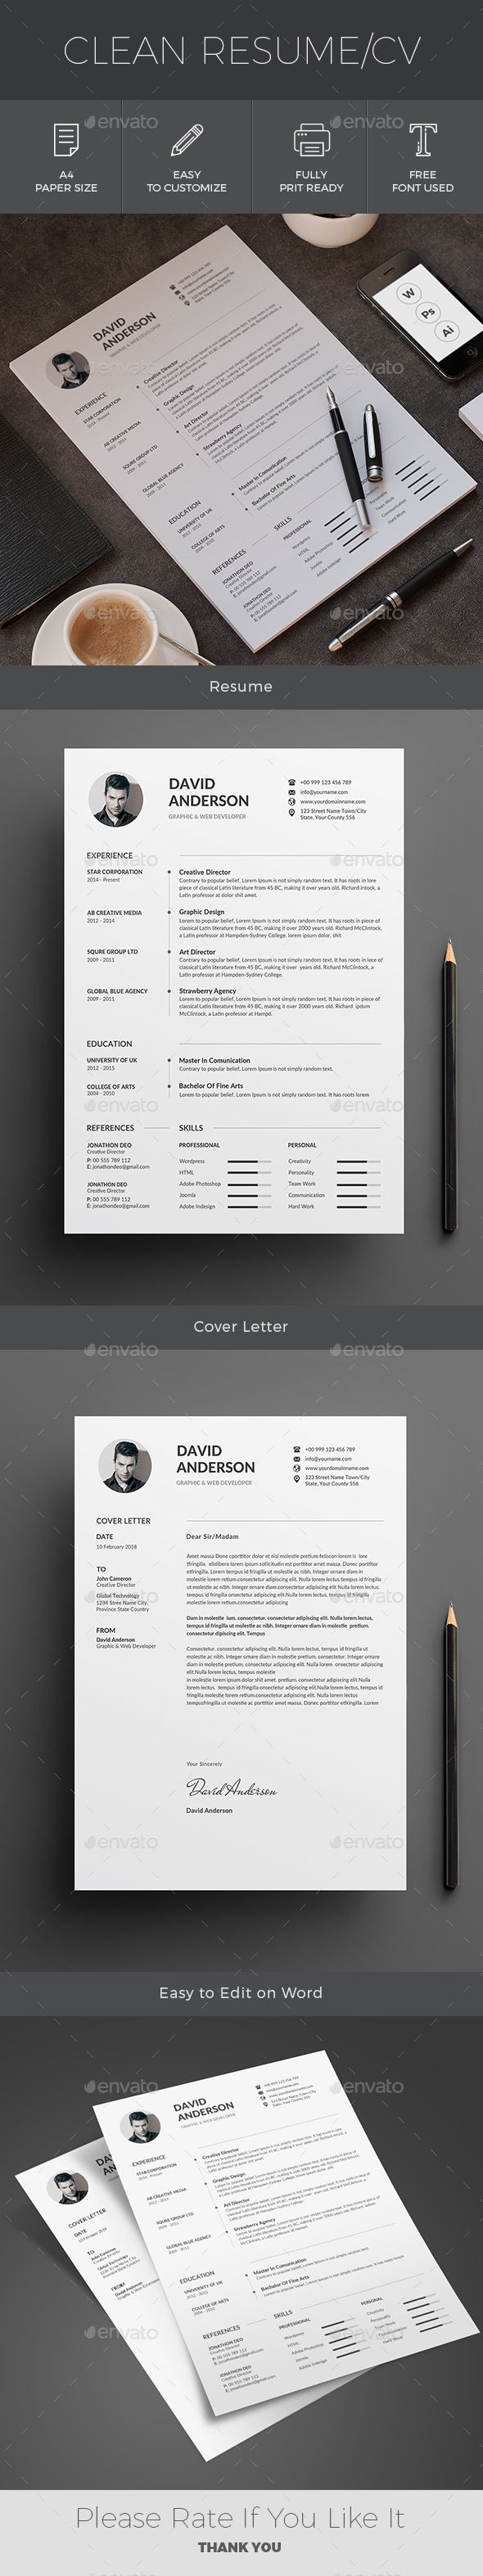 cover letter template for receptionist%0A Resume  u     AI Illustrator  cv template  word  u     Download     https